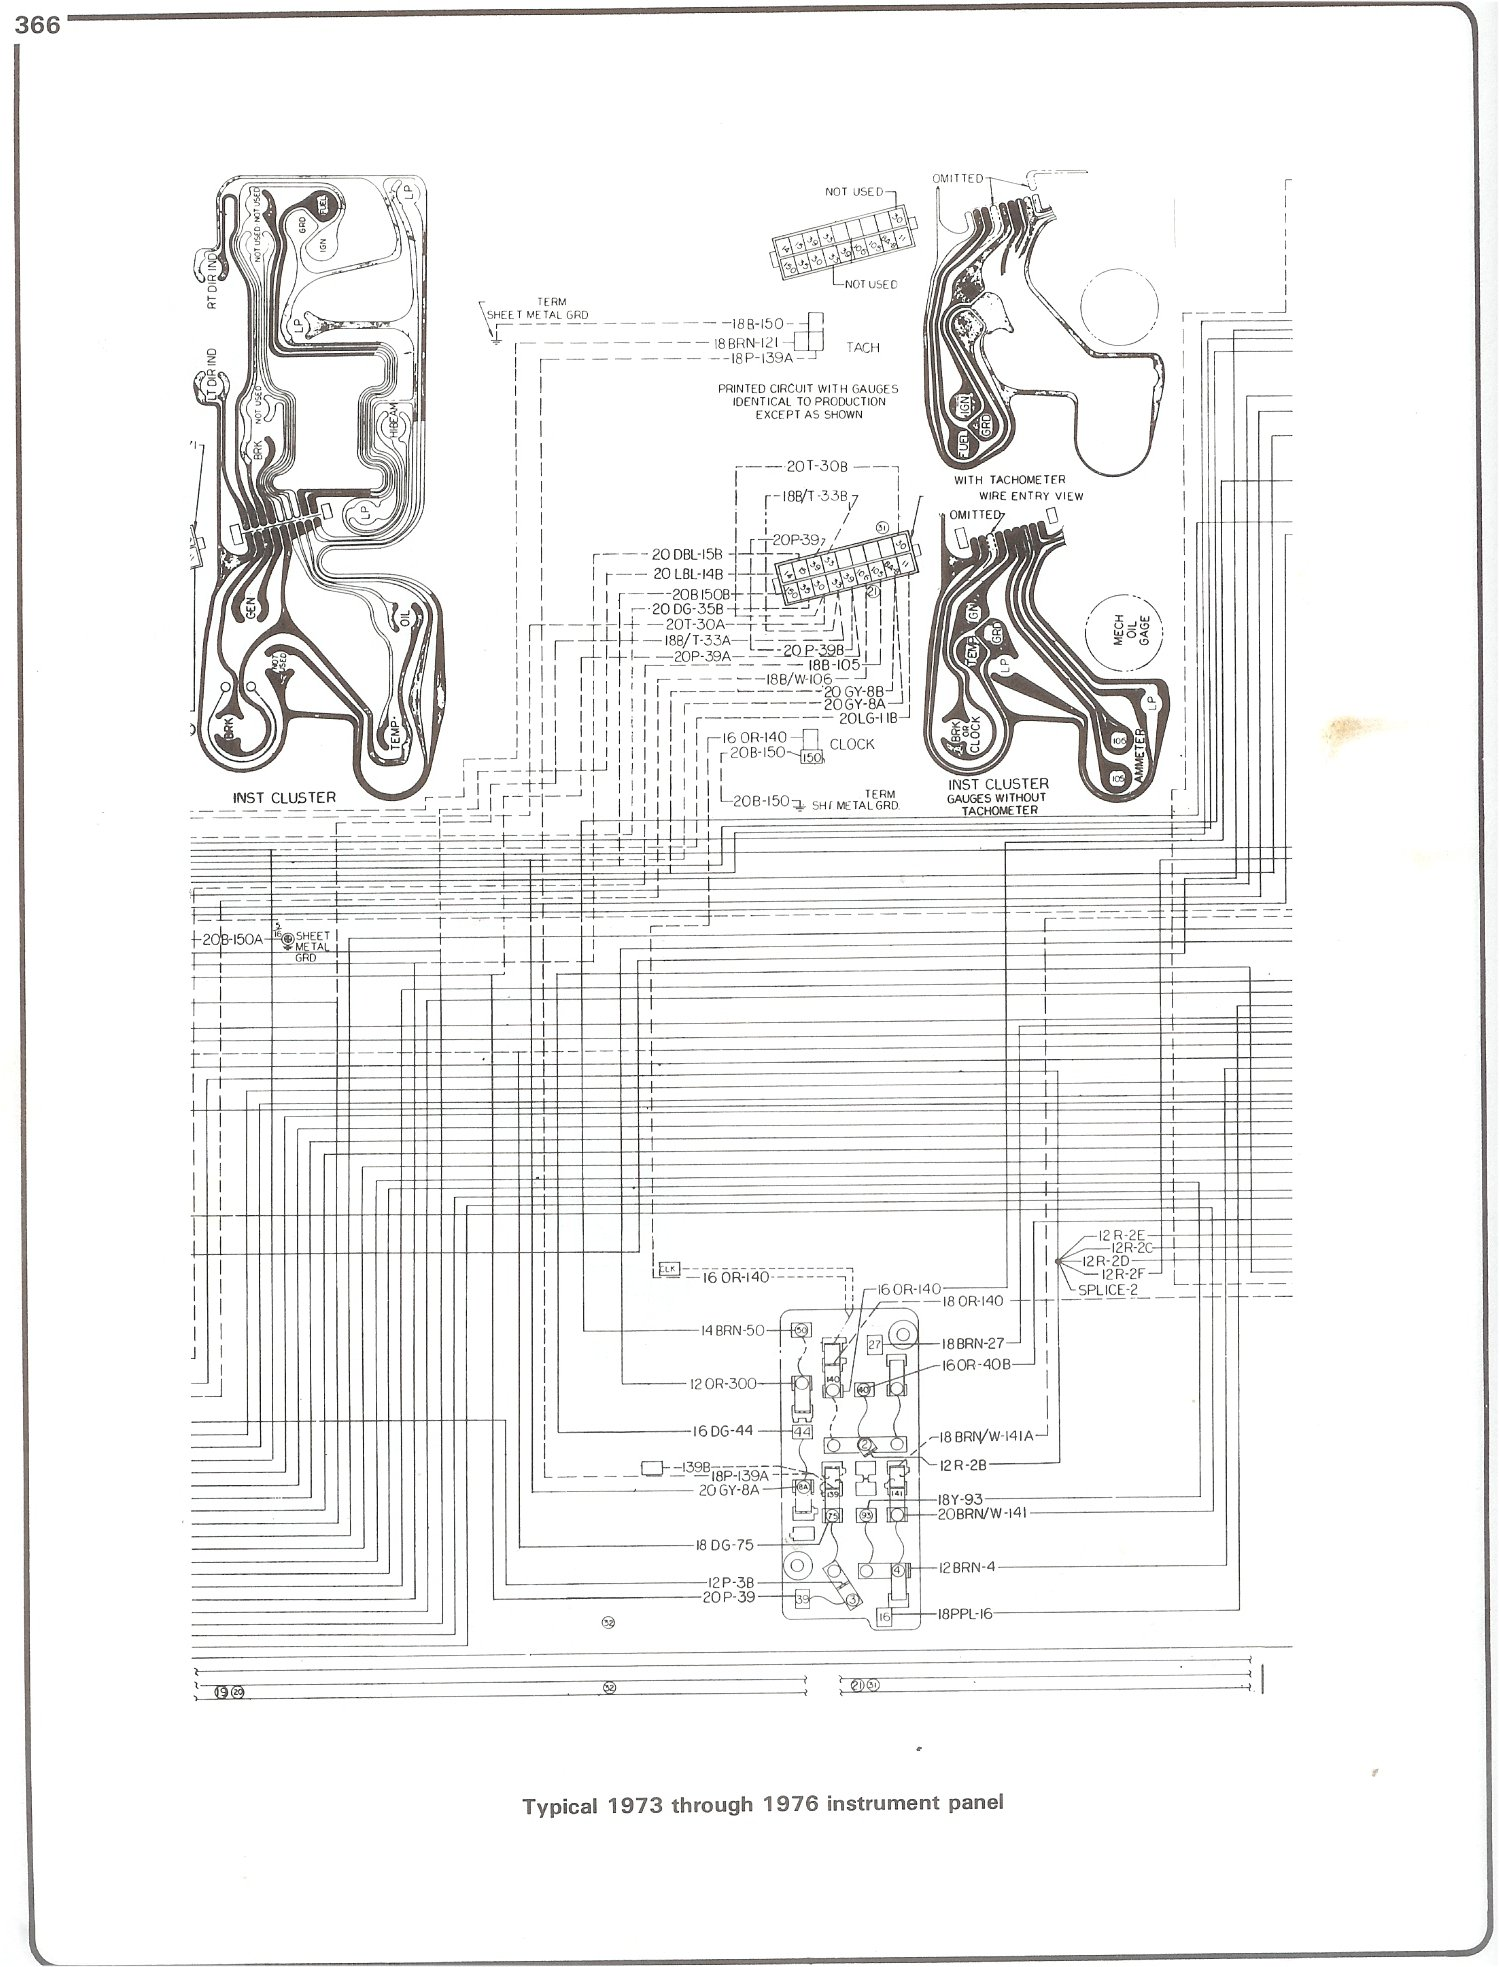 wiring diagram 1983 chevy c10 10 9 ulrich temme de \u2022complete 73 87 wiring diagrams rh forum 73 87chevytrucks com 1983 chevy c10 engine wiring diagram 1972 chevy ignition wiring diagram